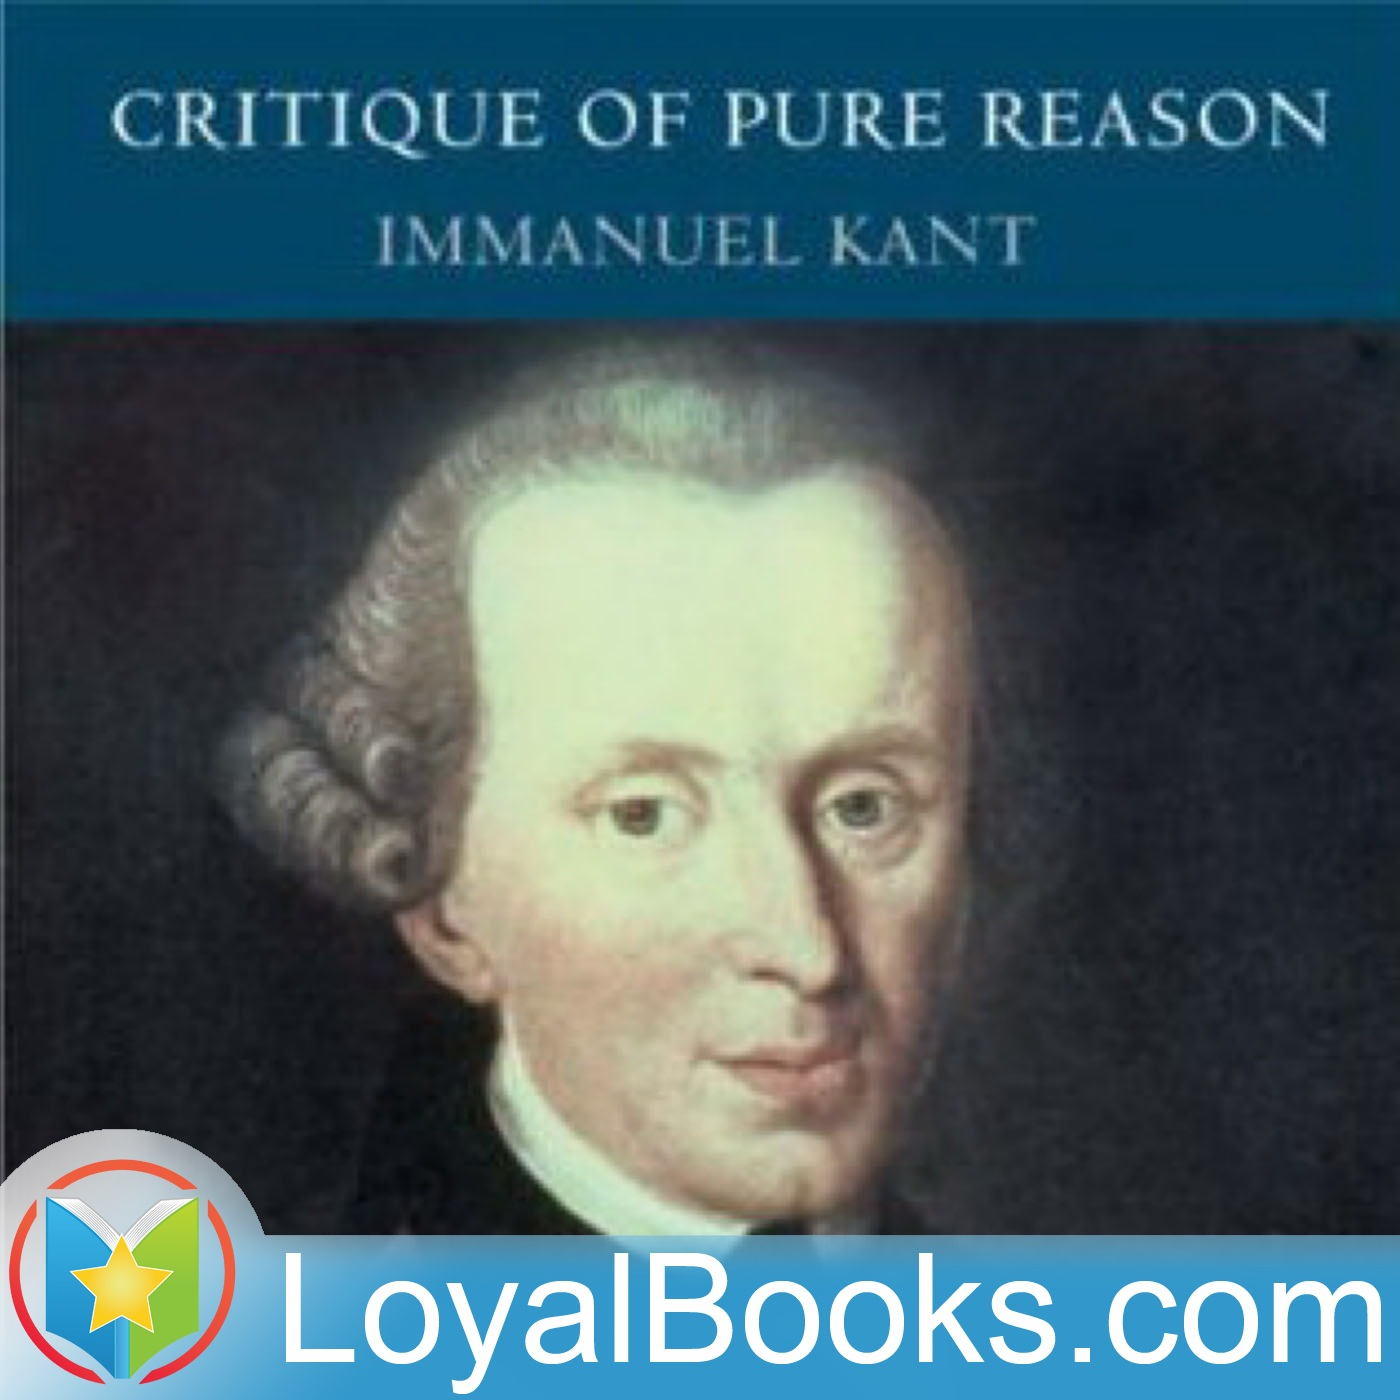 <![CDATA[The Critique of Pure Reason by Immanuel Kant]]>